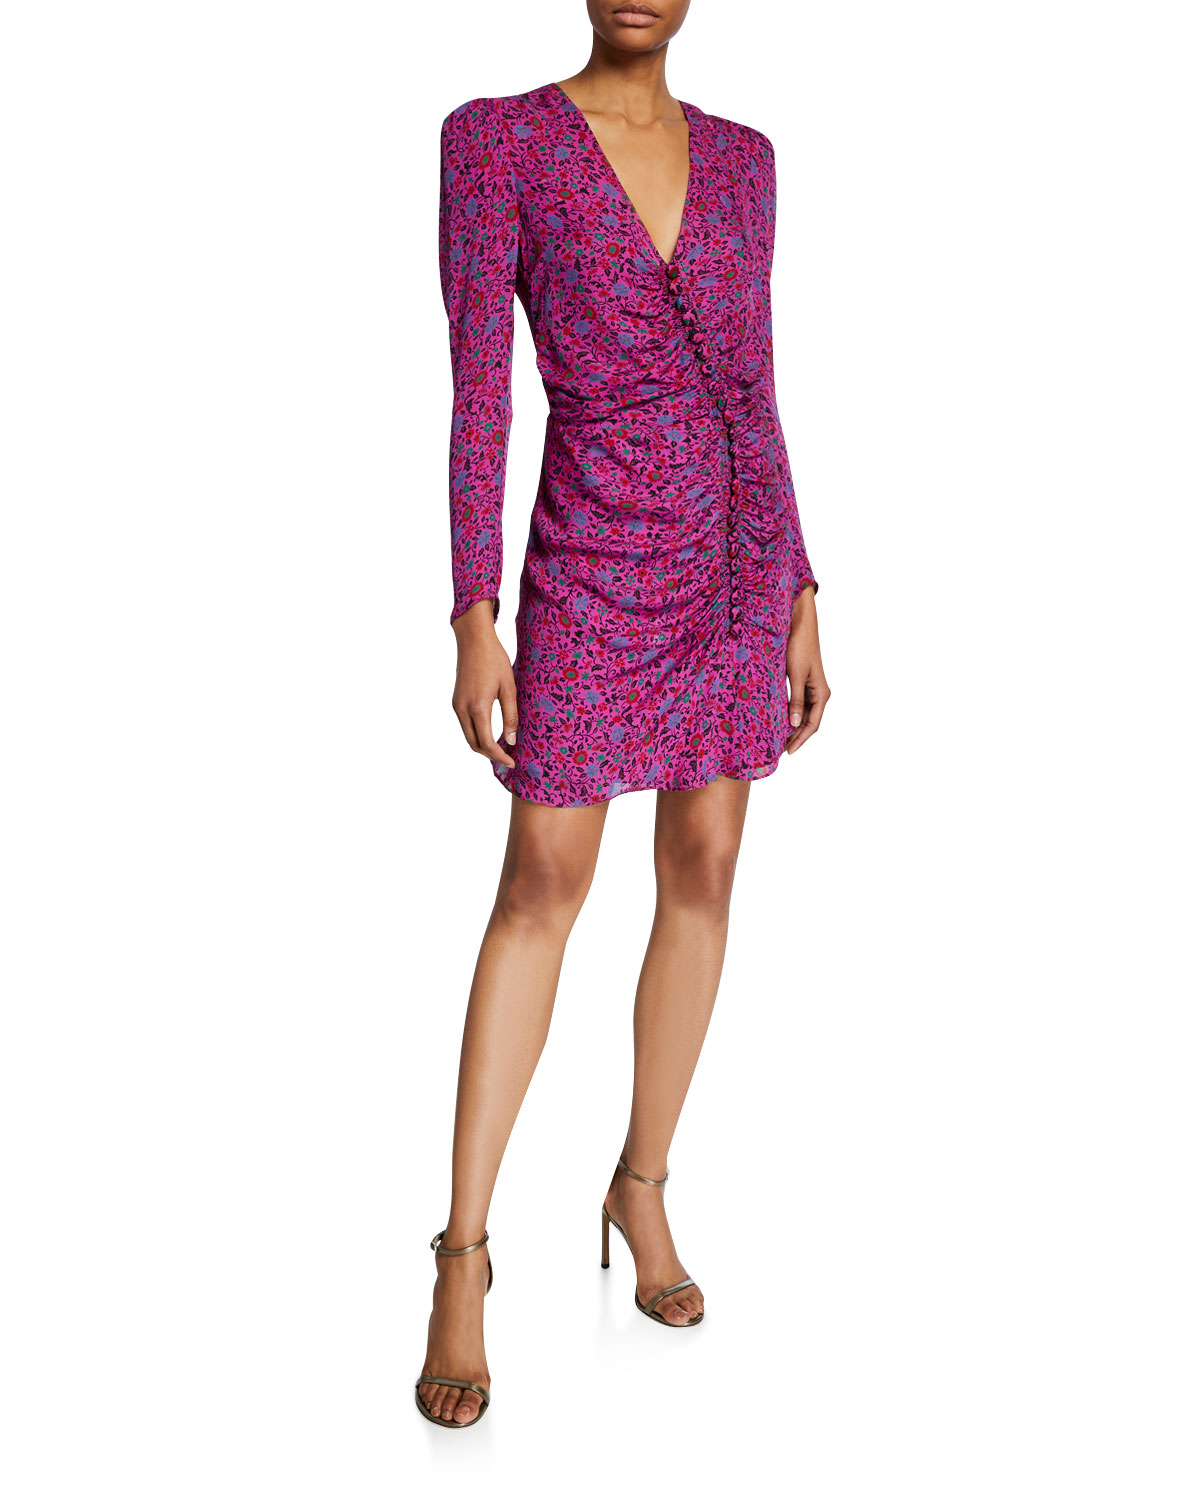 Veronica Beard Dresses VERONA FLORAL LONG-SLEEVE COCKTAIL DRESS